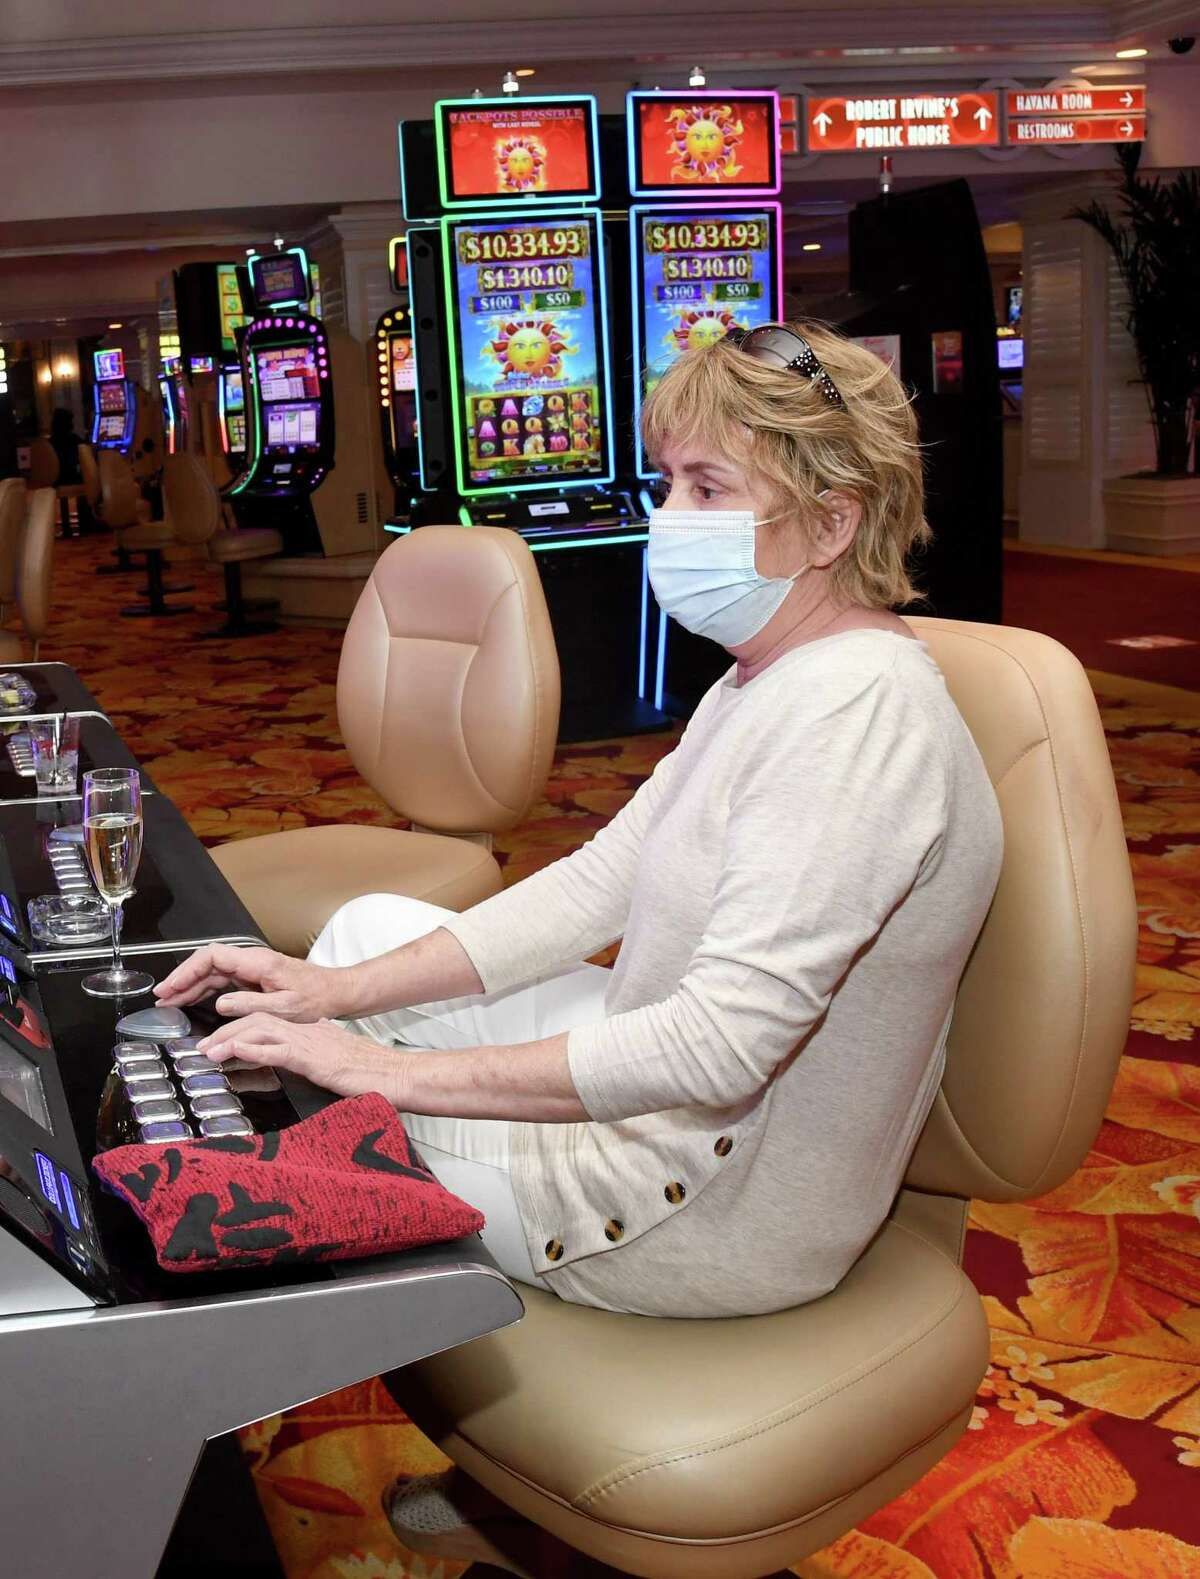 Casinos in Las Vegas are open. But shows remain dark and conventions have yet to return.